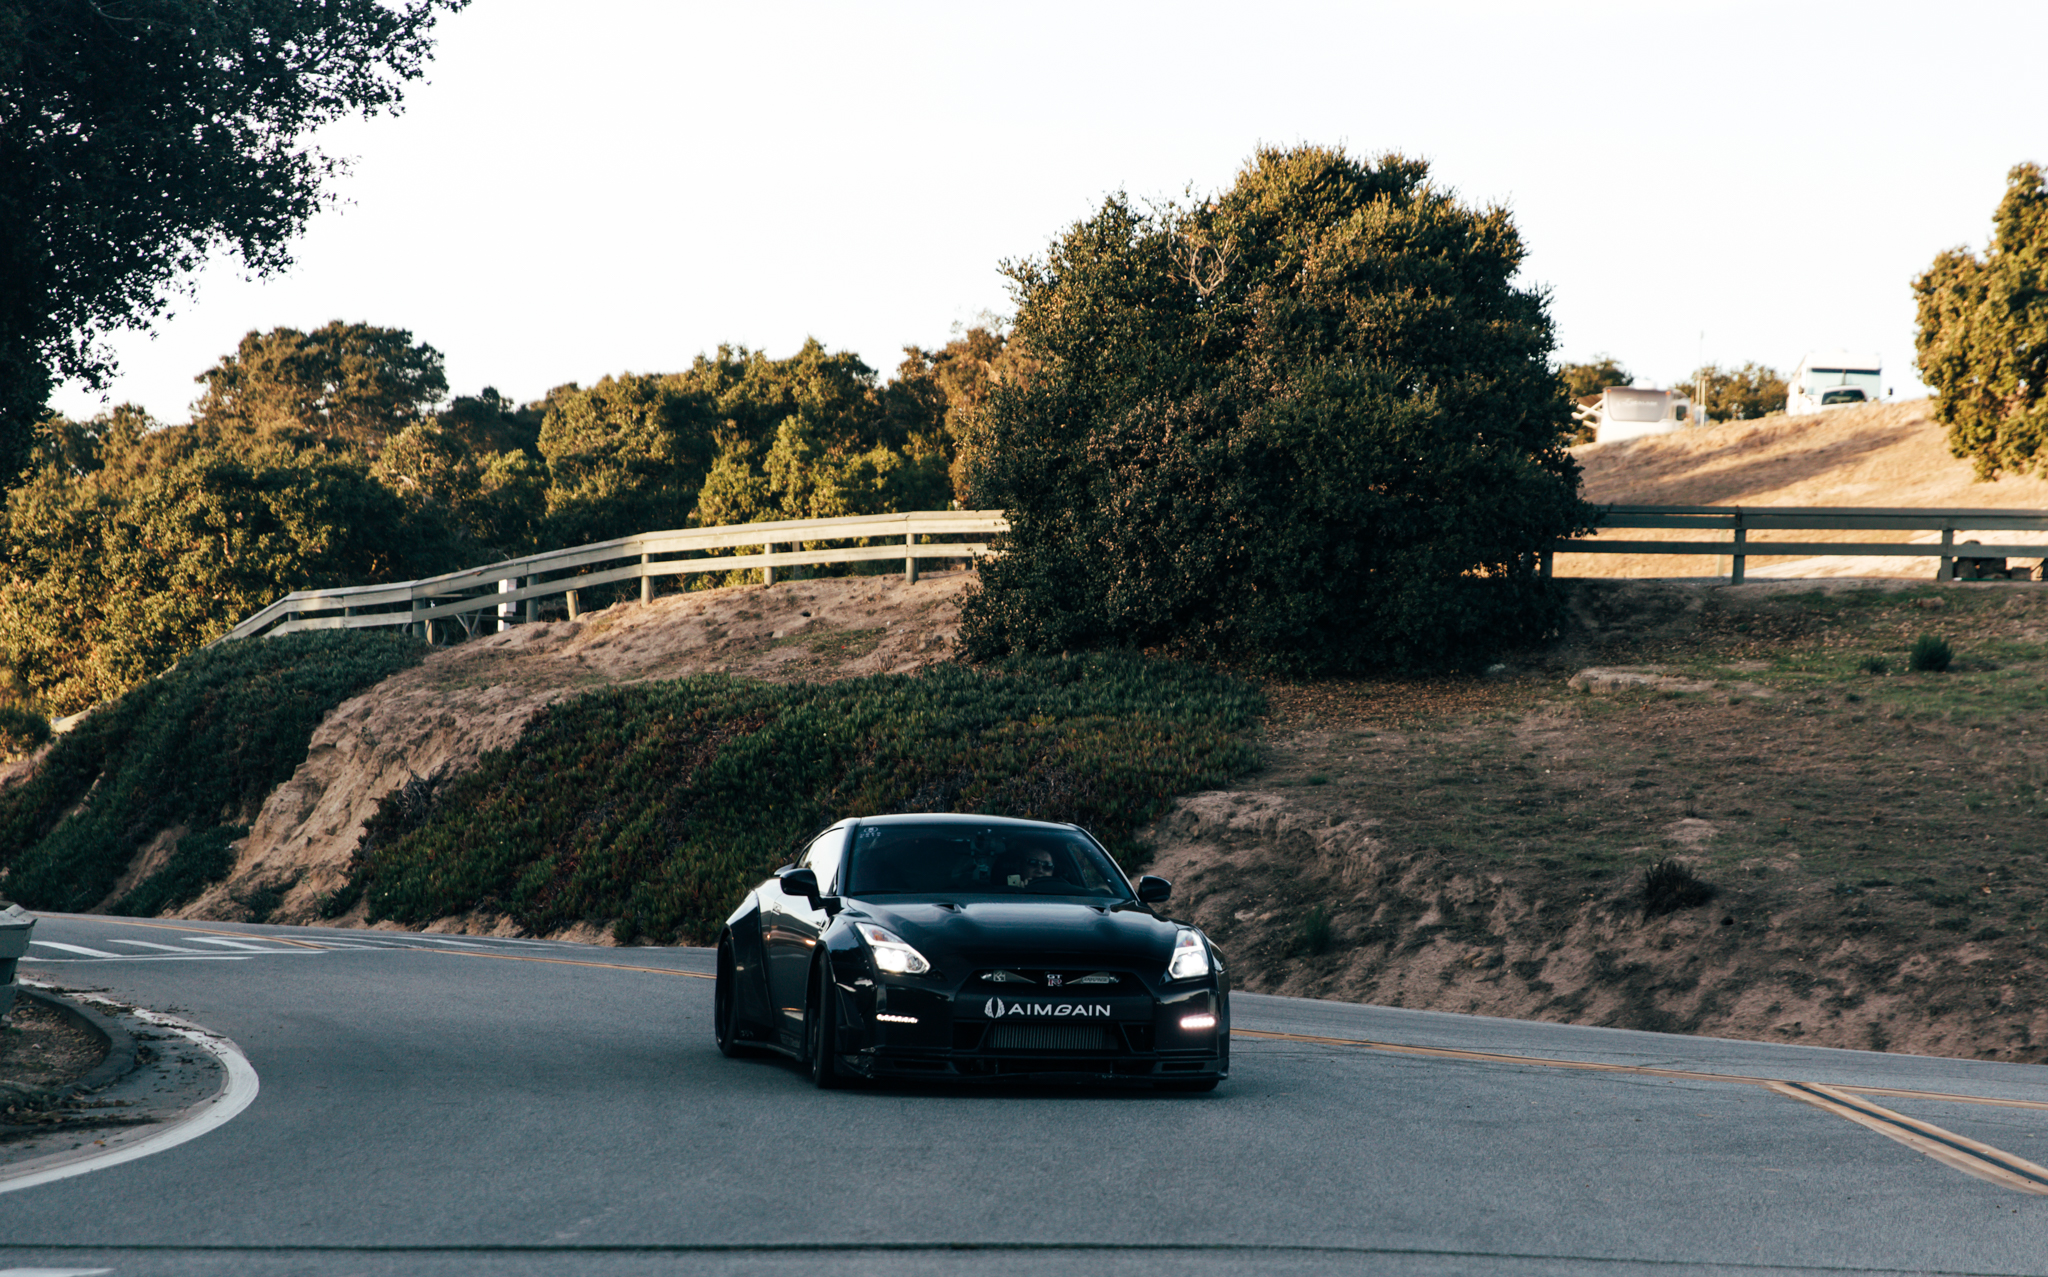 Stay_Driven_Rs_Day-11.jpg